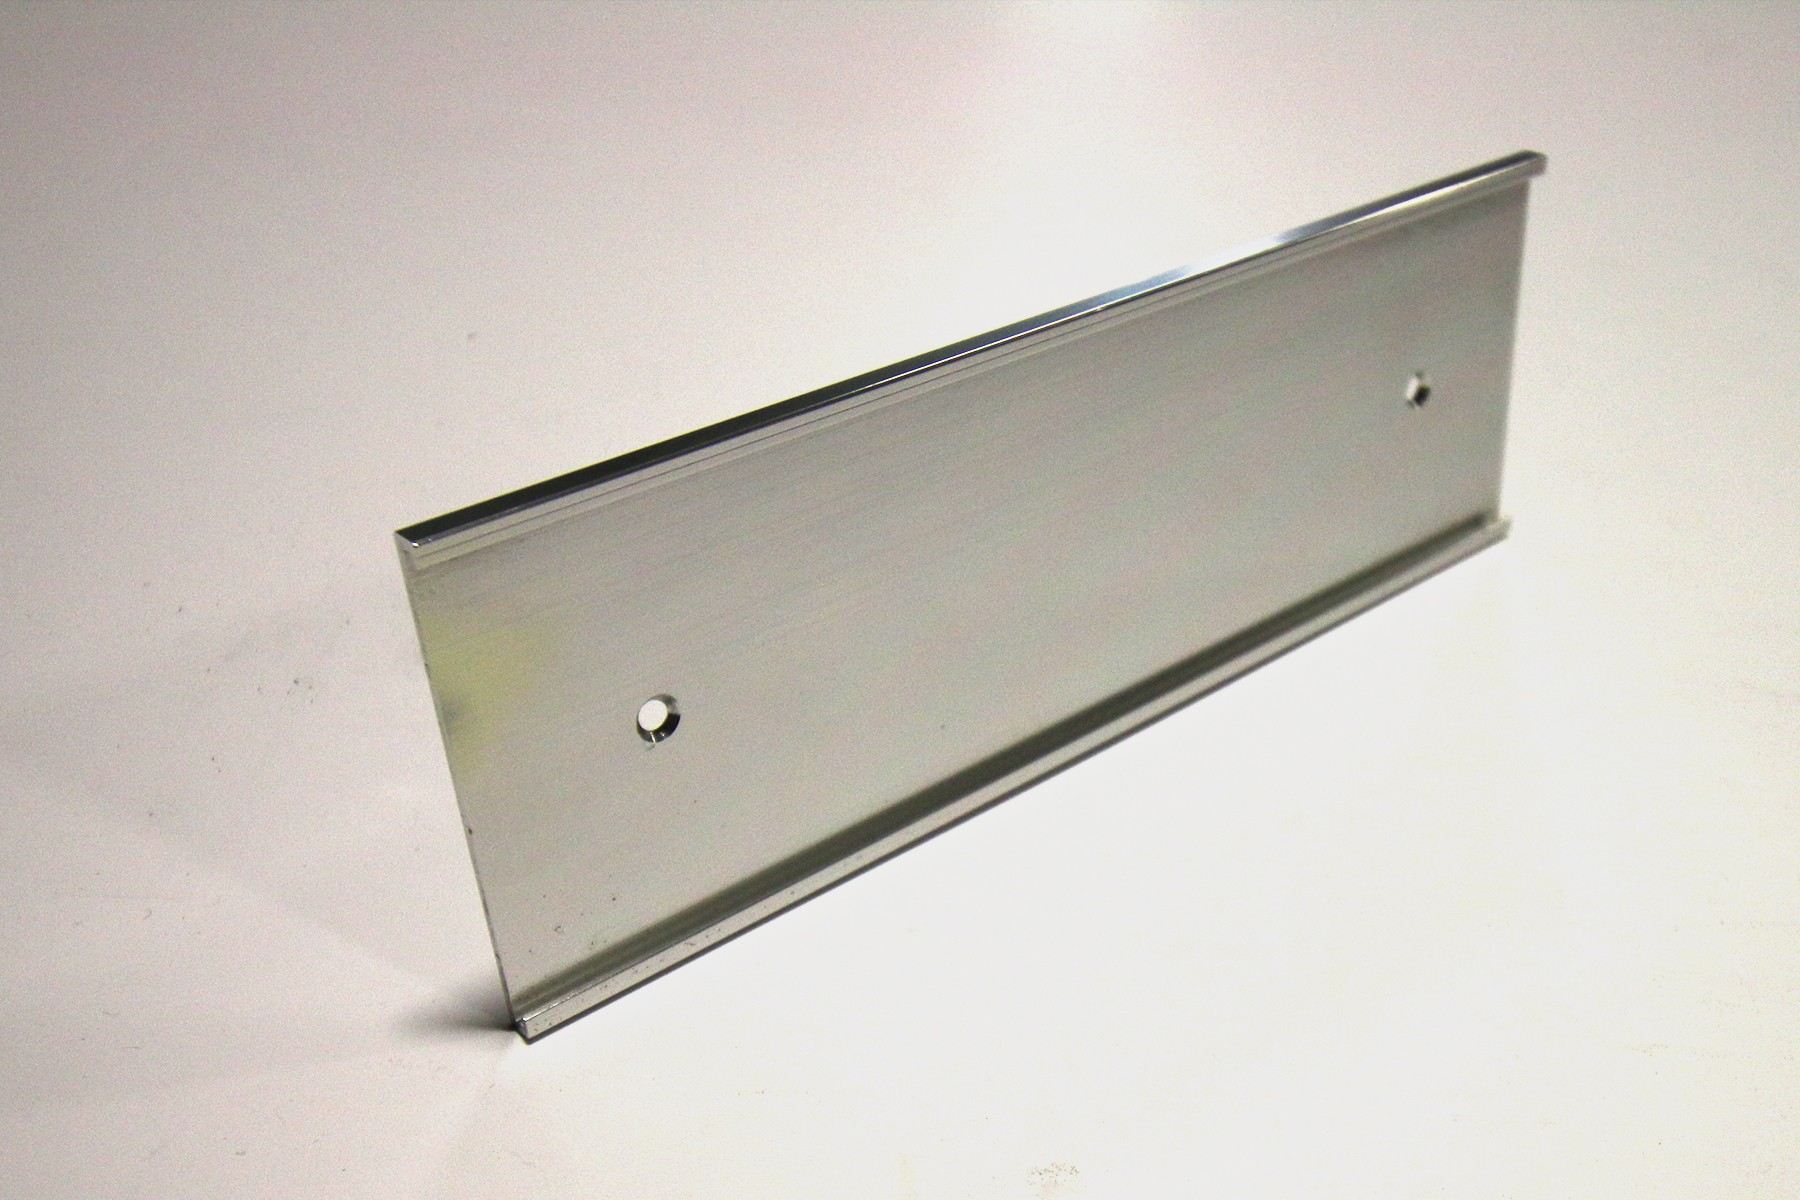 2-1/2 x 12 Wall Holder, Silver